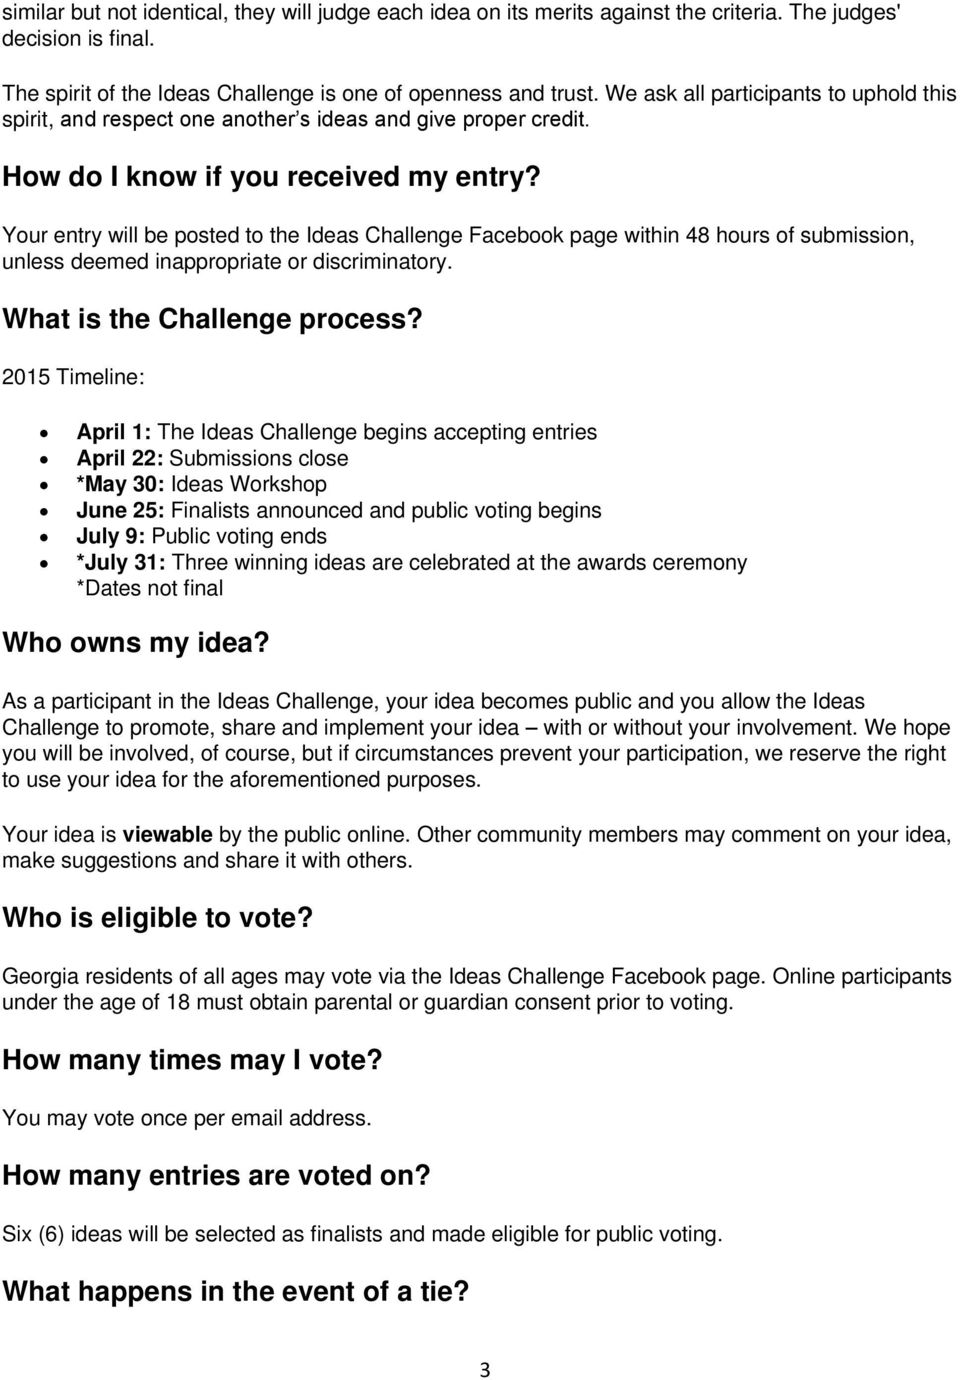 Your entry will be posted to the Ideas Challenge Facebook page within 48 hours of submission, unless deemed inappropriate or discriminatory. What is the Challenge process?